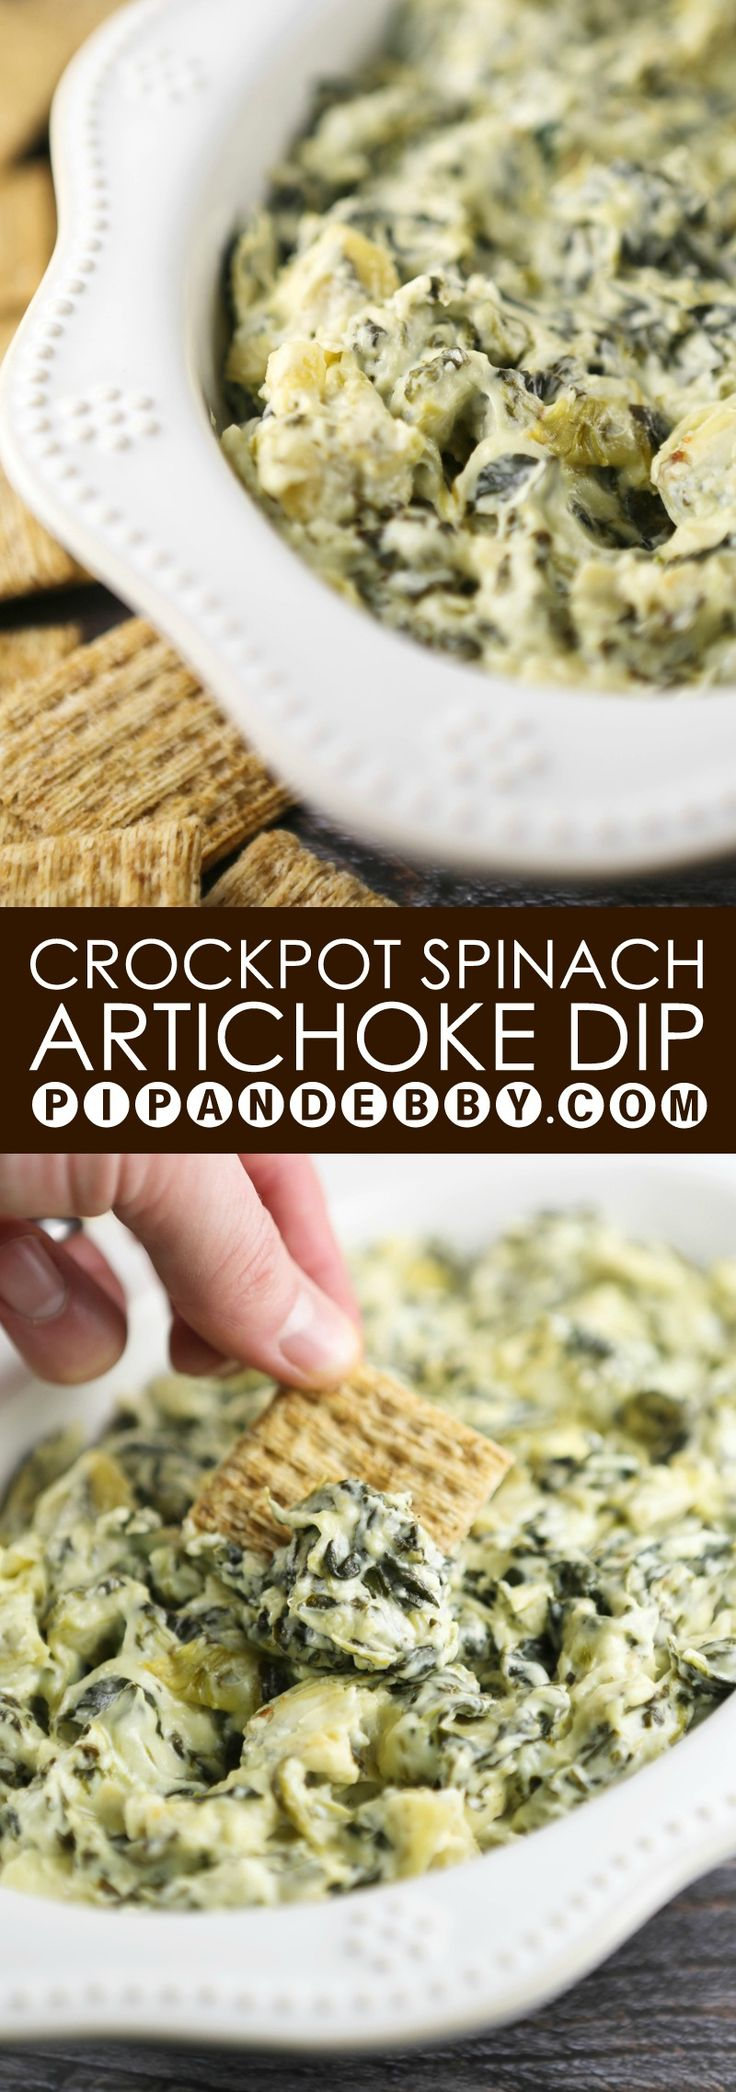 Crockpot Spinach Artichoke Dip | Best party food EVER. This stuff is like crack.